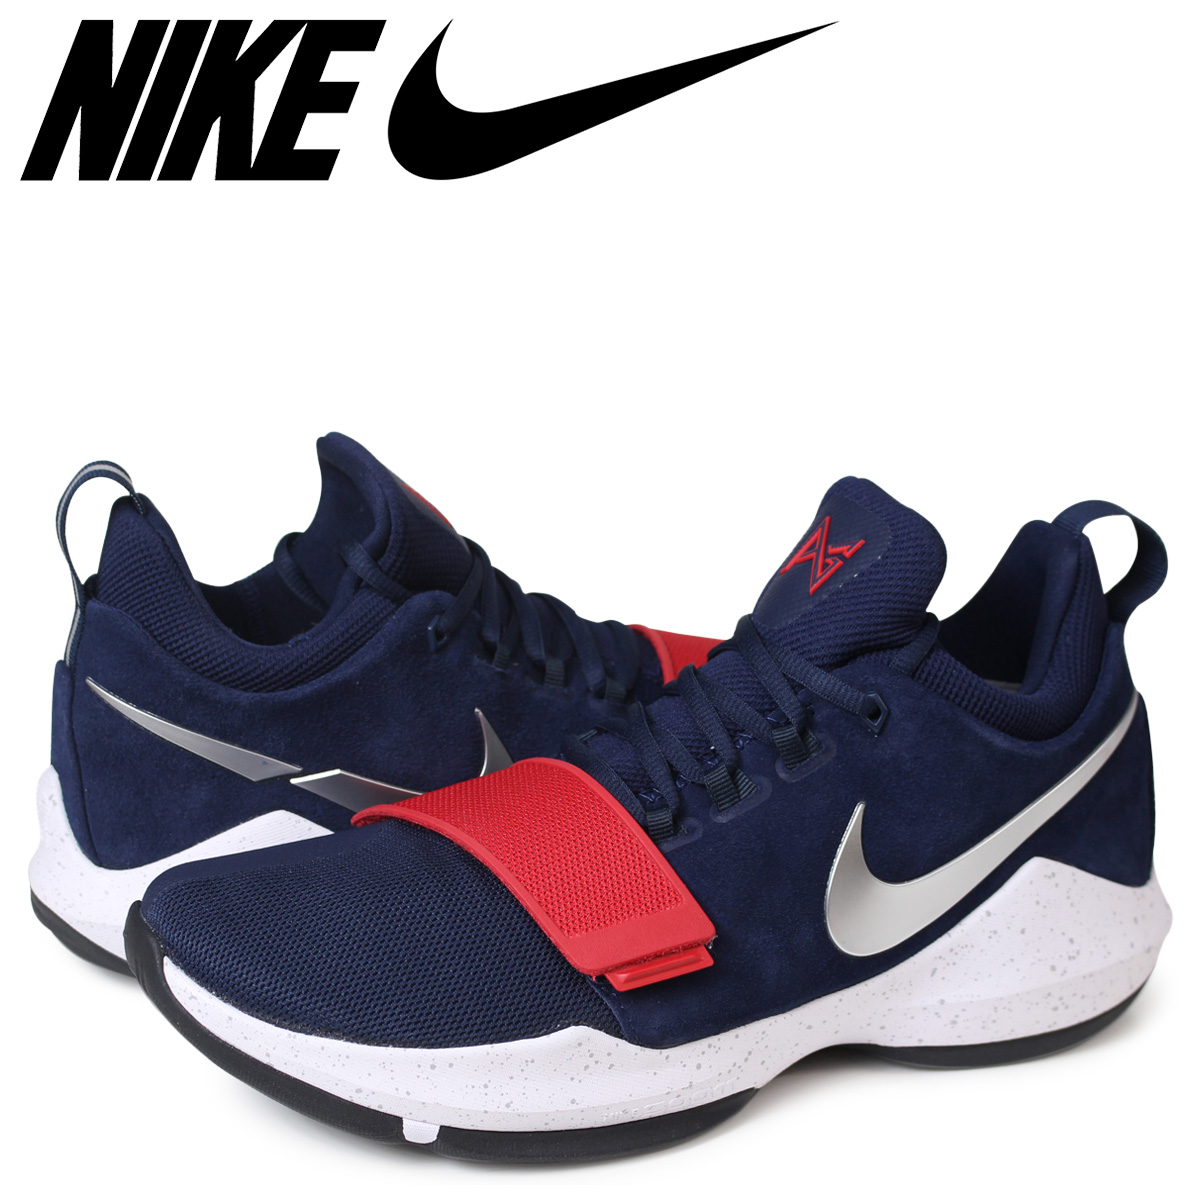 NIKE Nike PG1 sneakers men PG 1 EP 878,628 900 navy